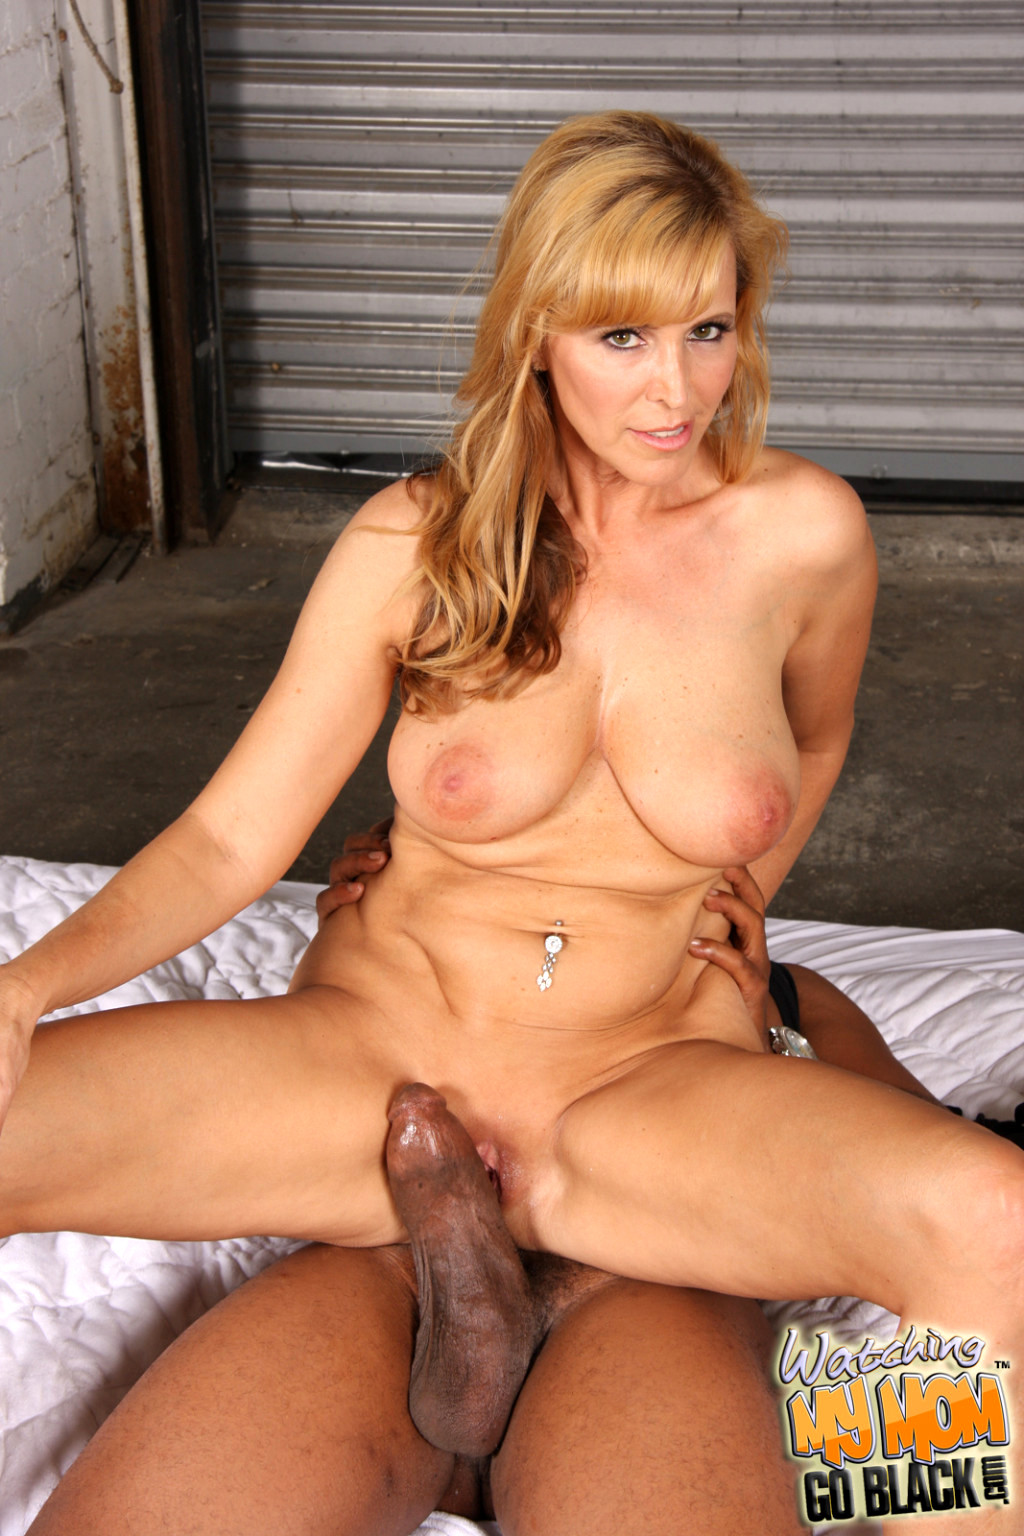 Cuckold wife and bull-3299